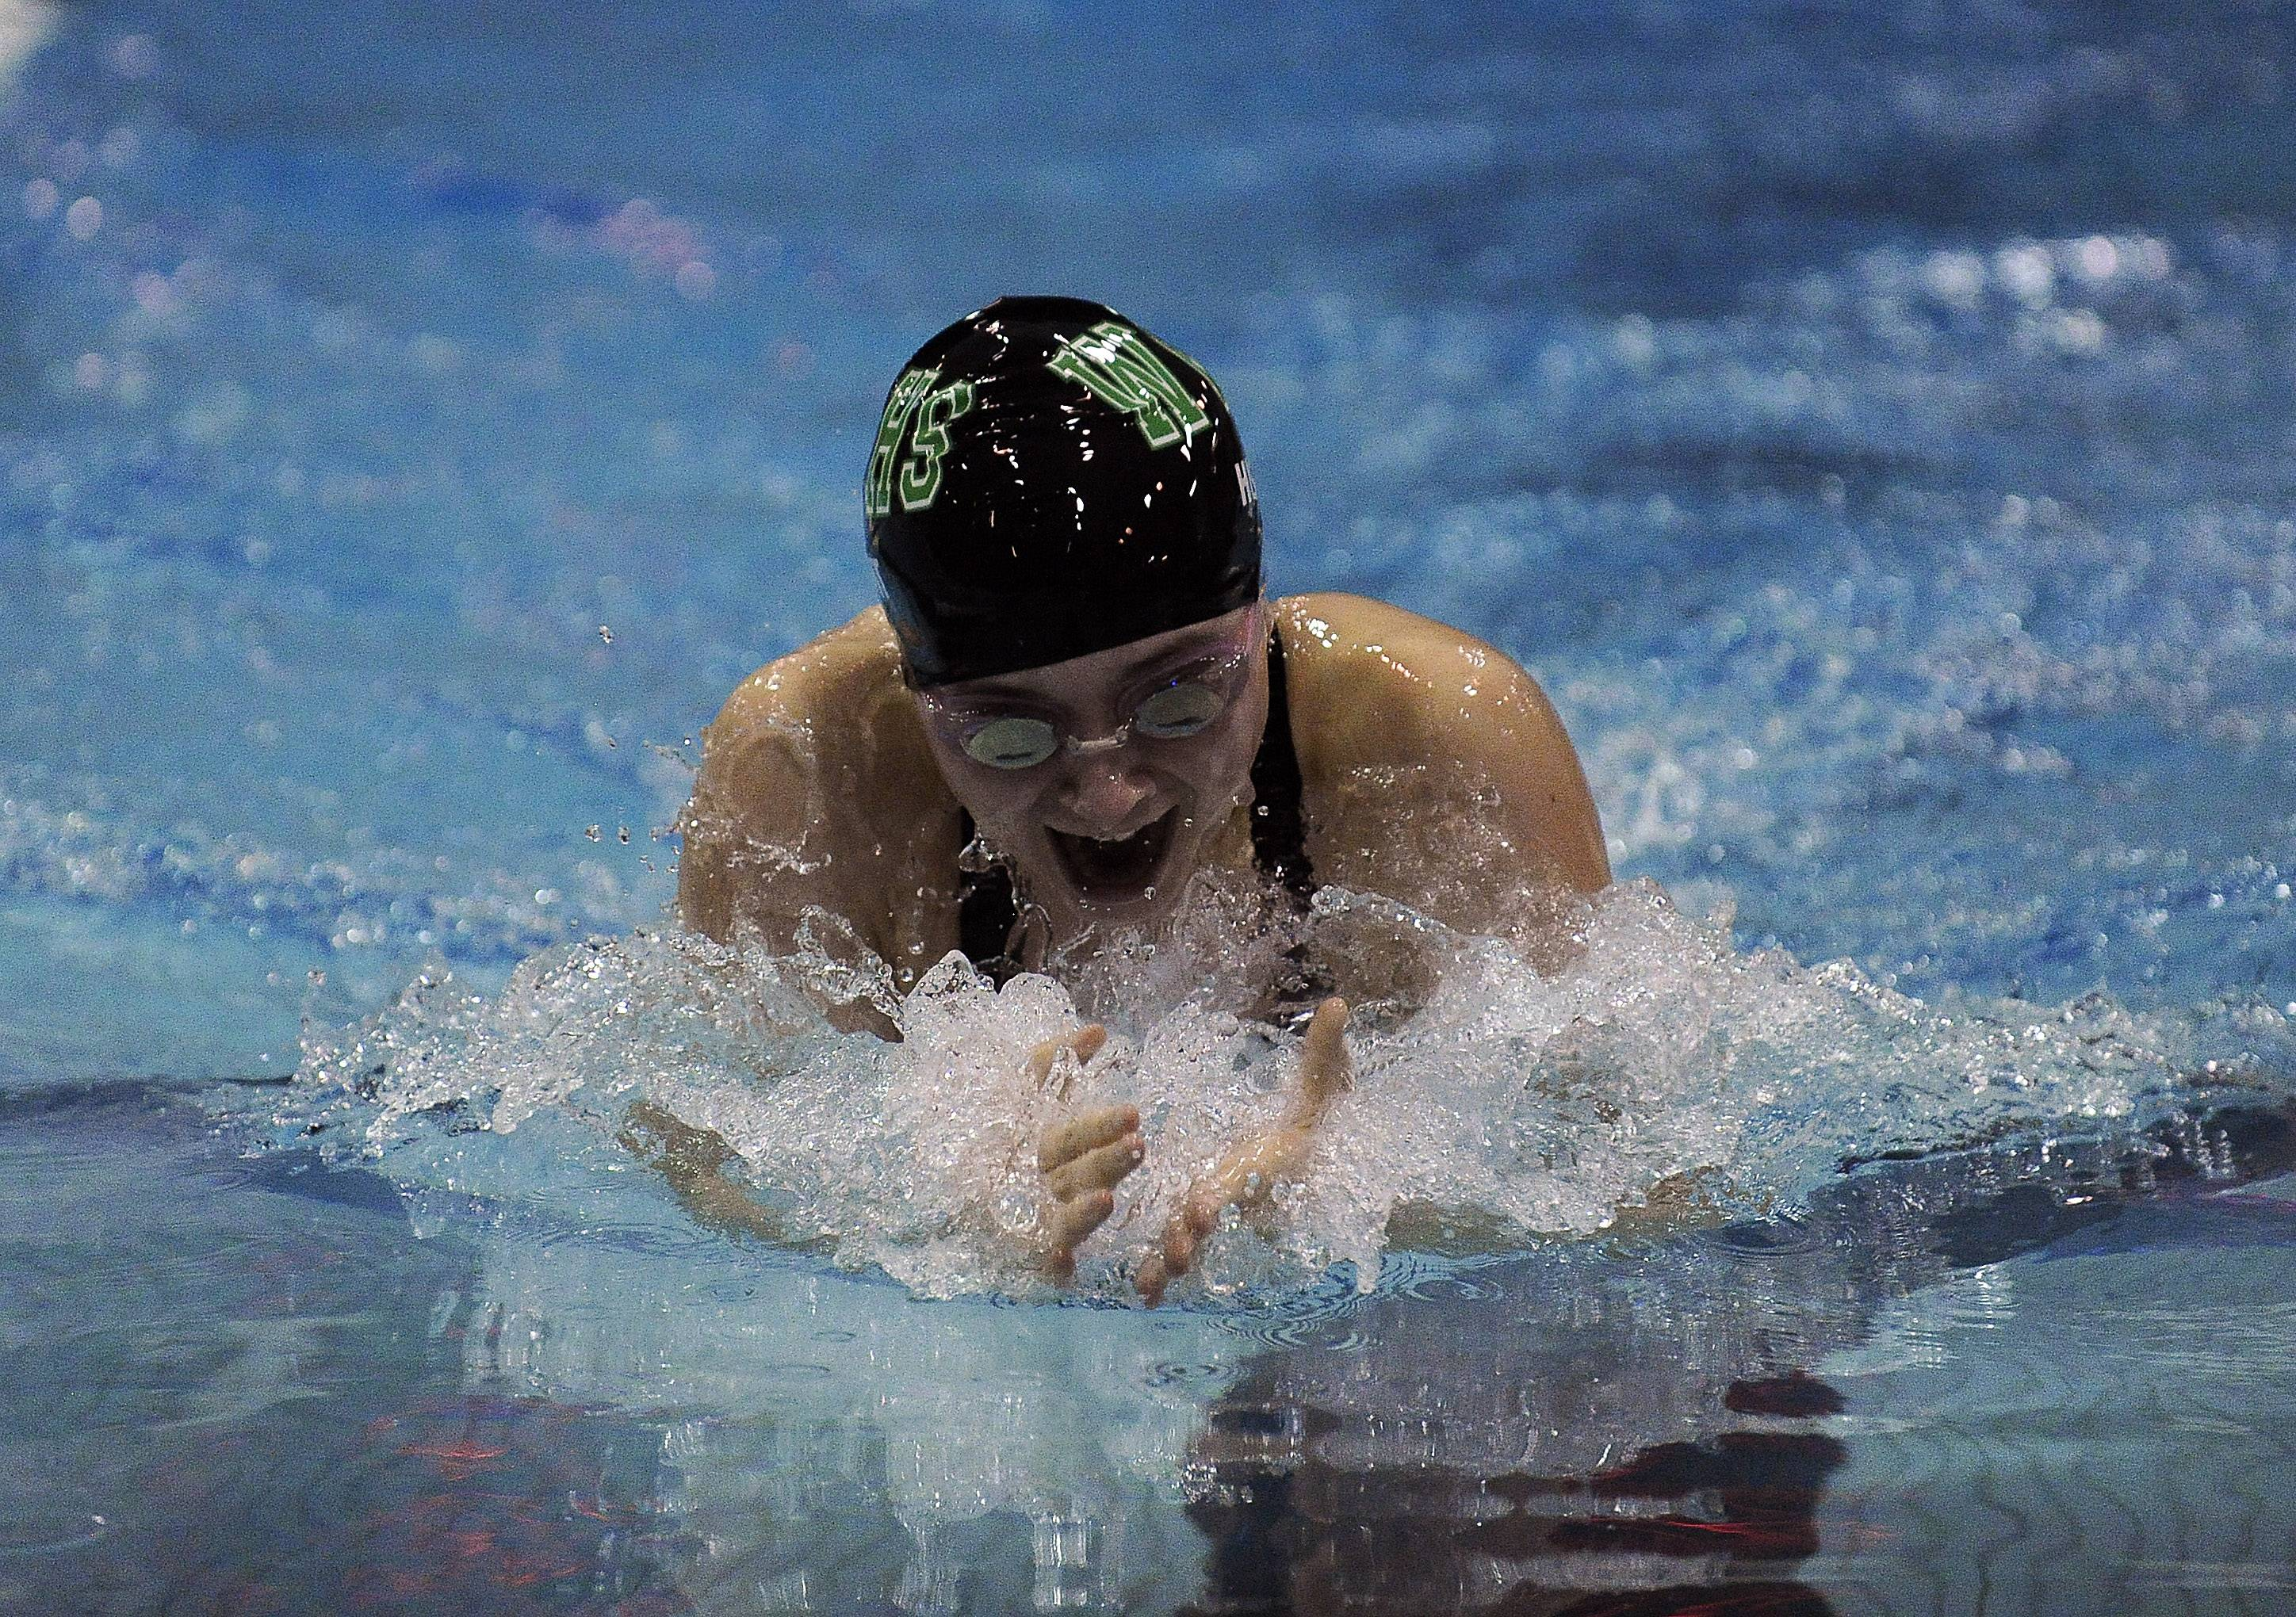 Waubonsie Valley's Hannah Hunt plows through the water in the 100-yard Breaststroke at the IHSA State Swimming & Diving Championship Prelims at New Trier High School on Friday.